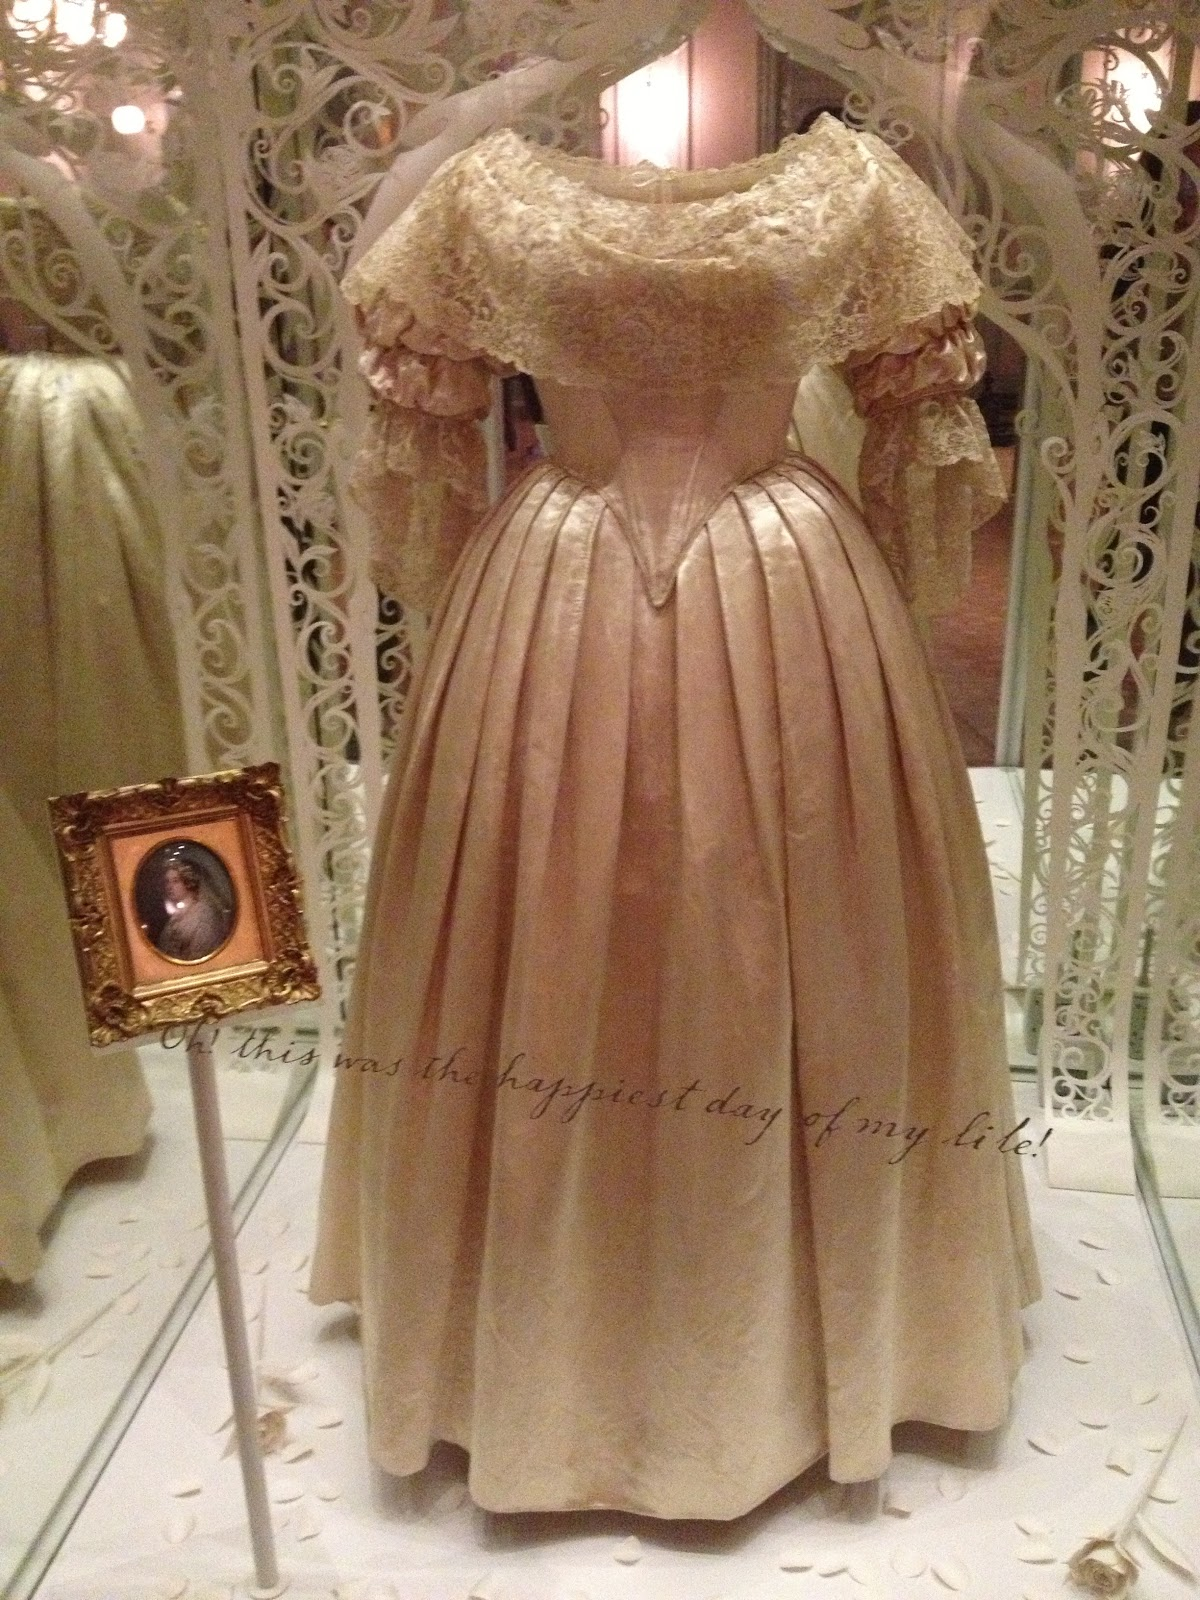 Kensington Palace Royal Wedding Dresses Book : Dressed in time kensington palace part queen victoria s dresses